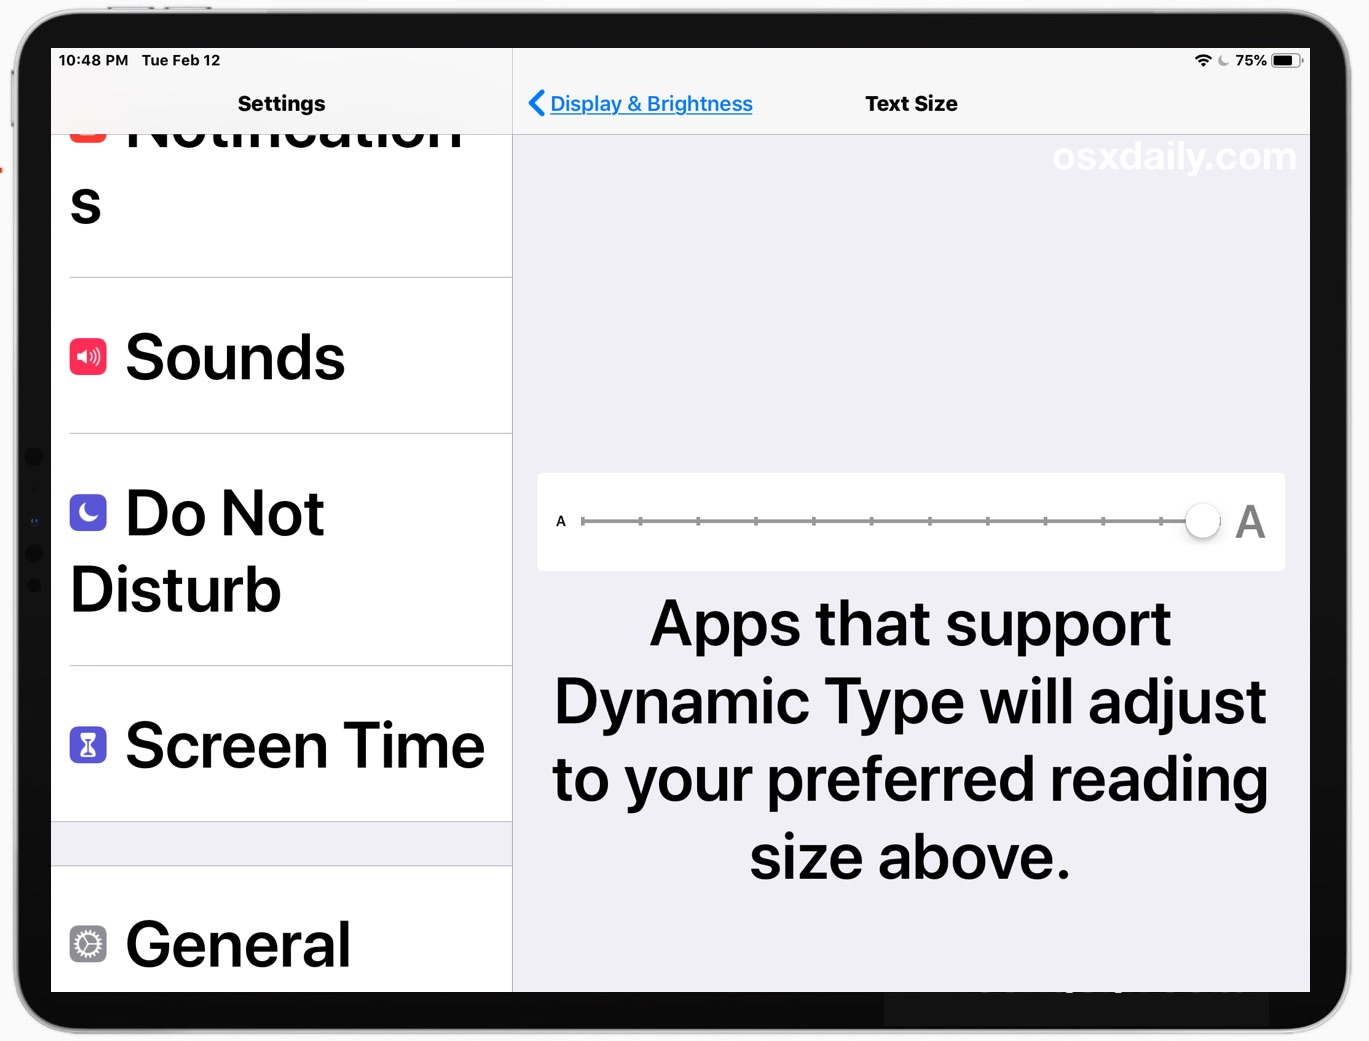 How To Make Text Size Much Larger On Ipad